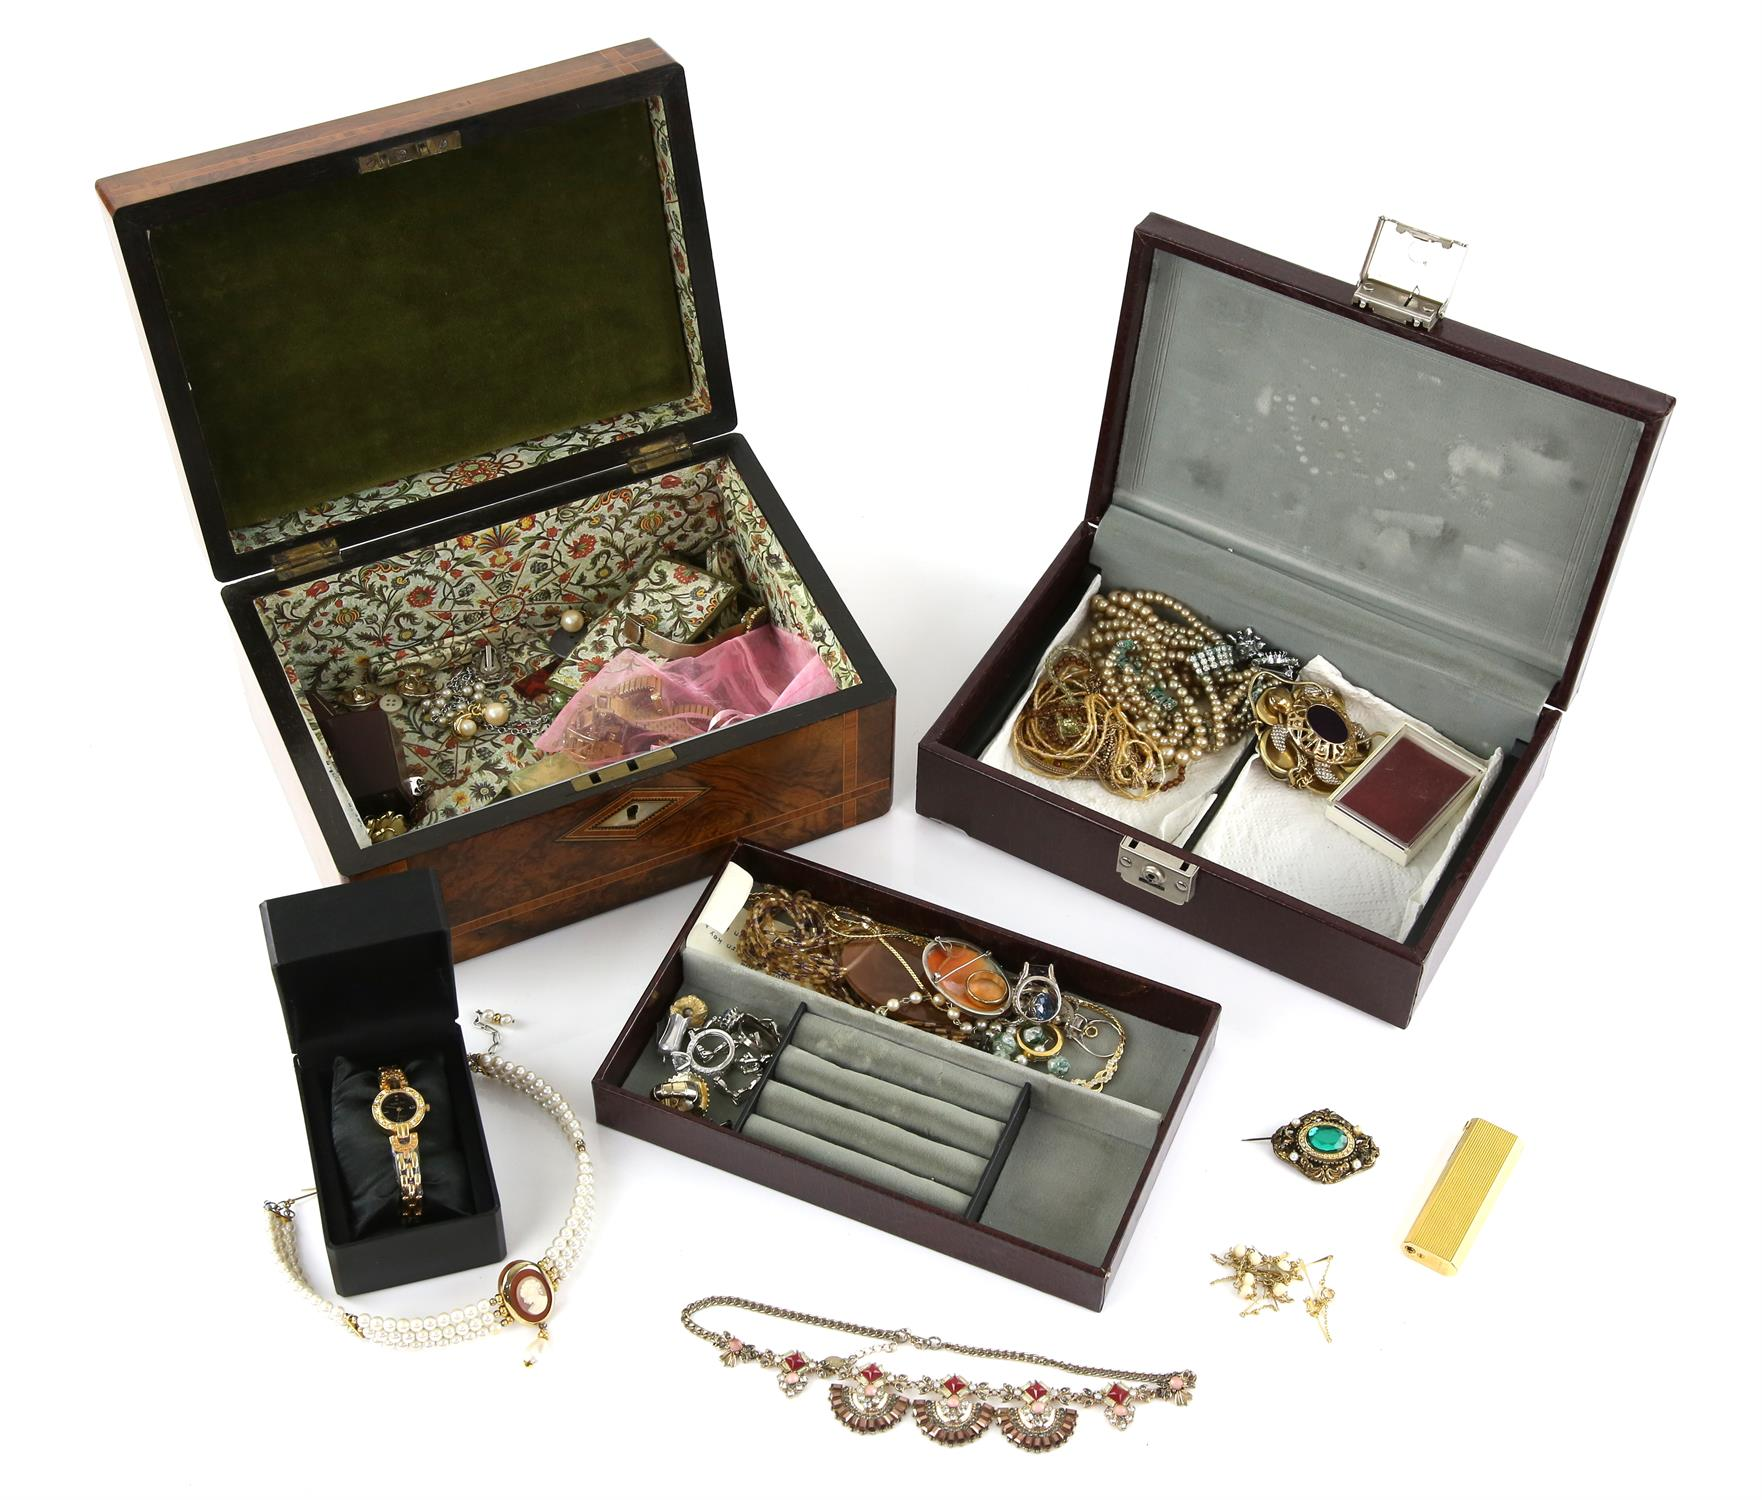 Two jewellery boxes containing various costume jewellery, including a silver blue cubic zirconia